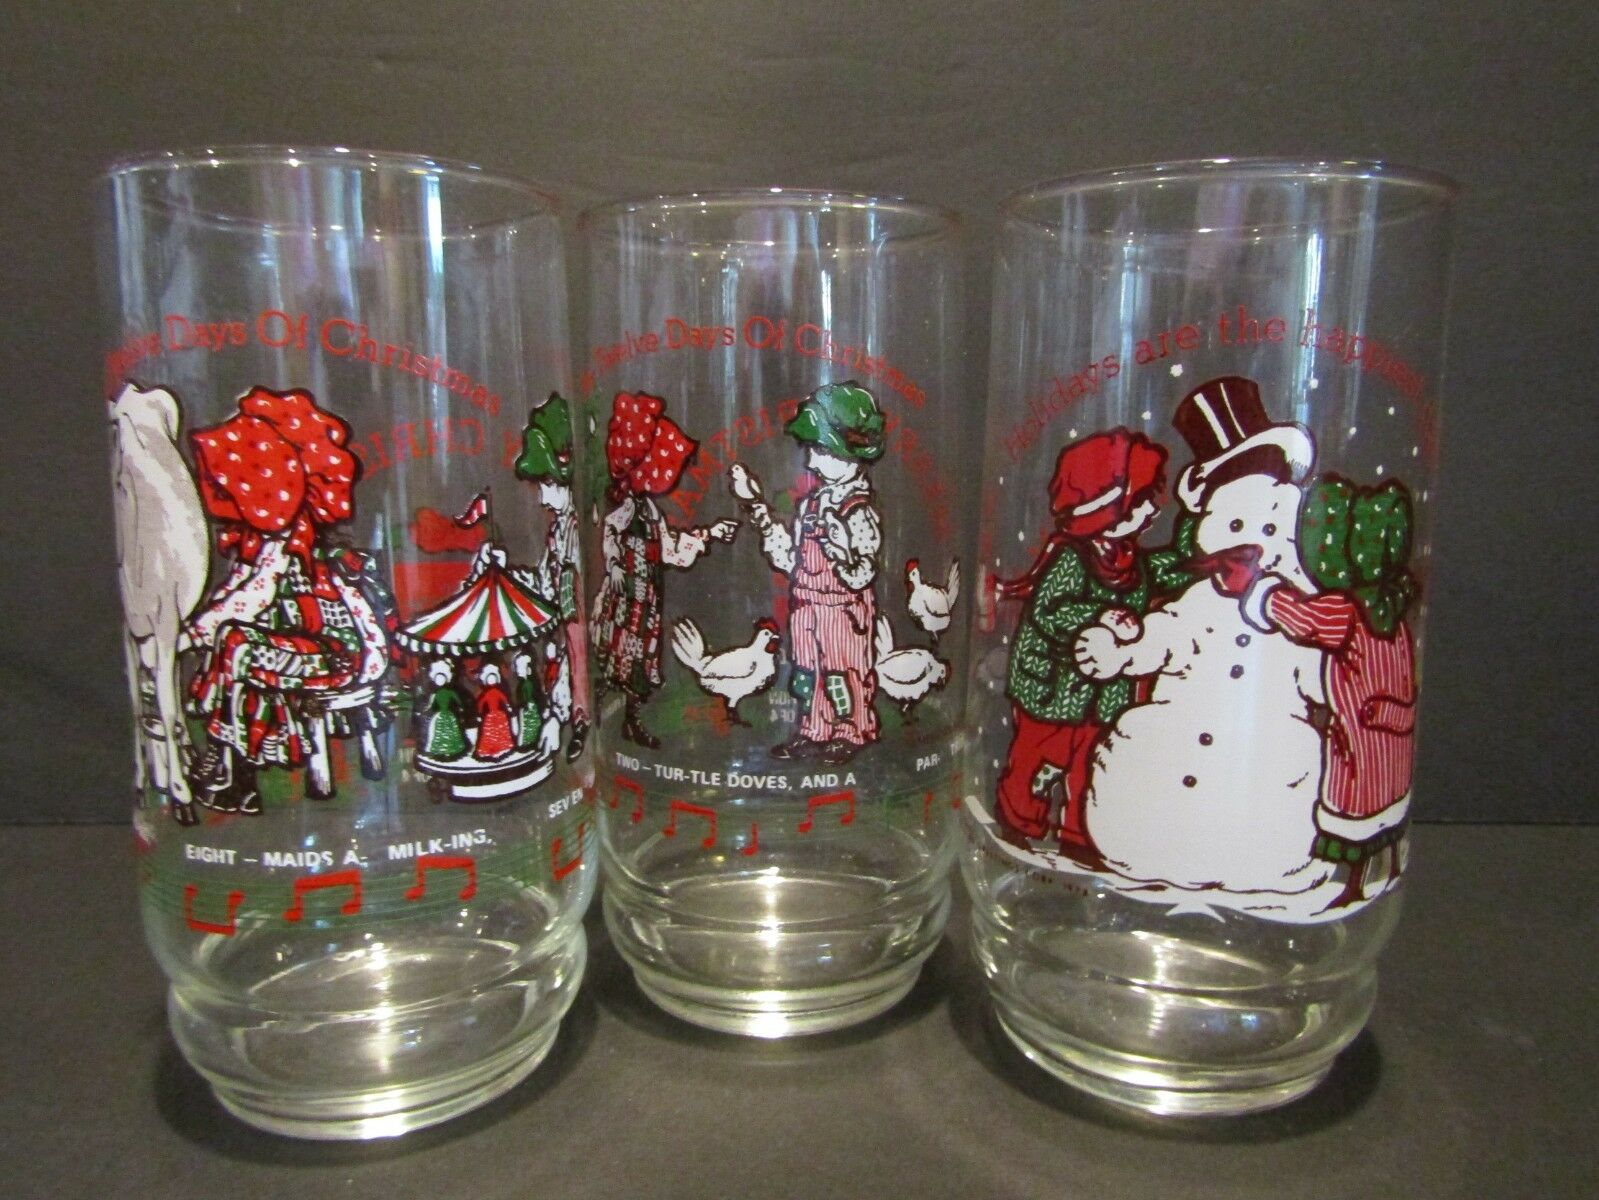 holly hobbie and robbycoca cola12 days of christmasglasses1979